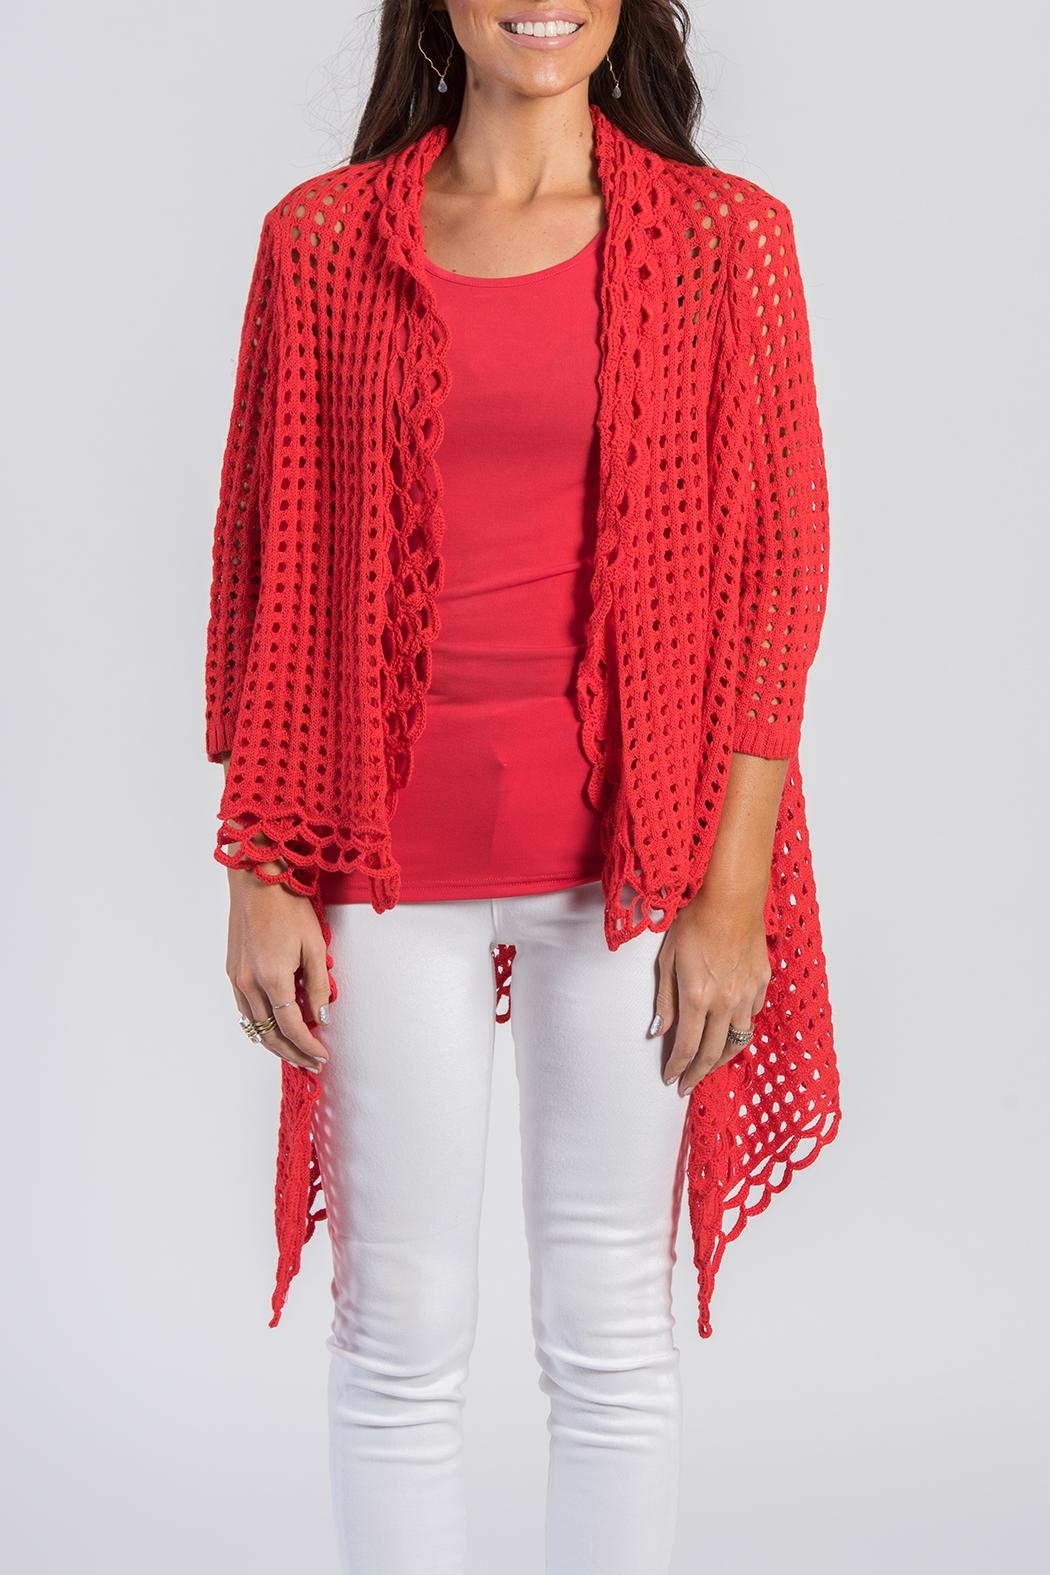 Ethyl Red Knit Cardigan - Back Cropped Image